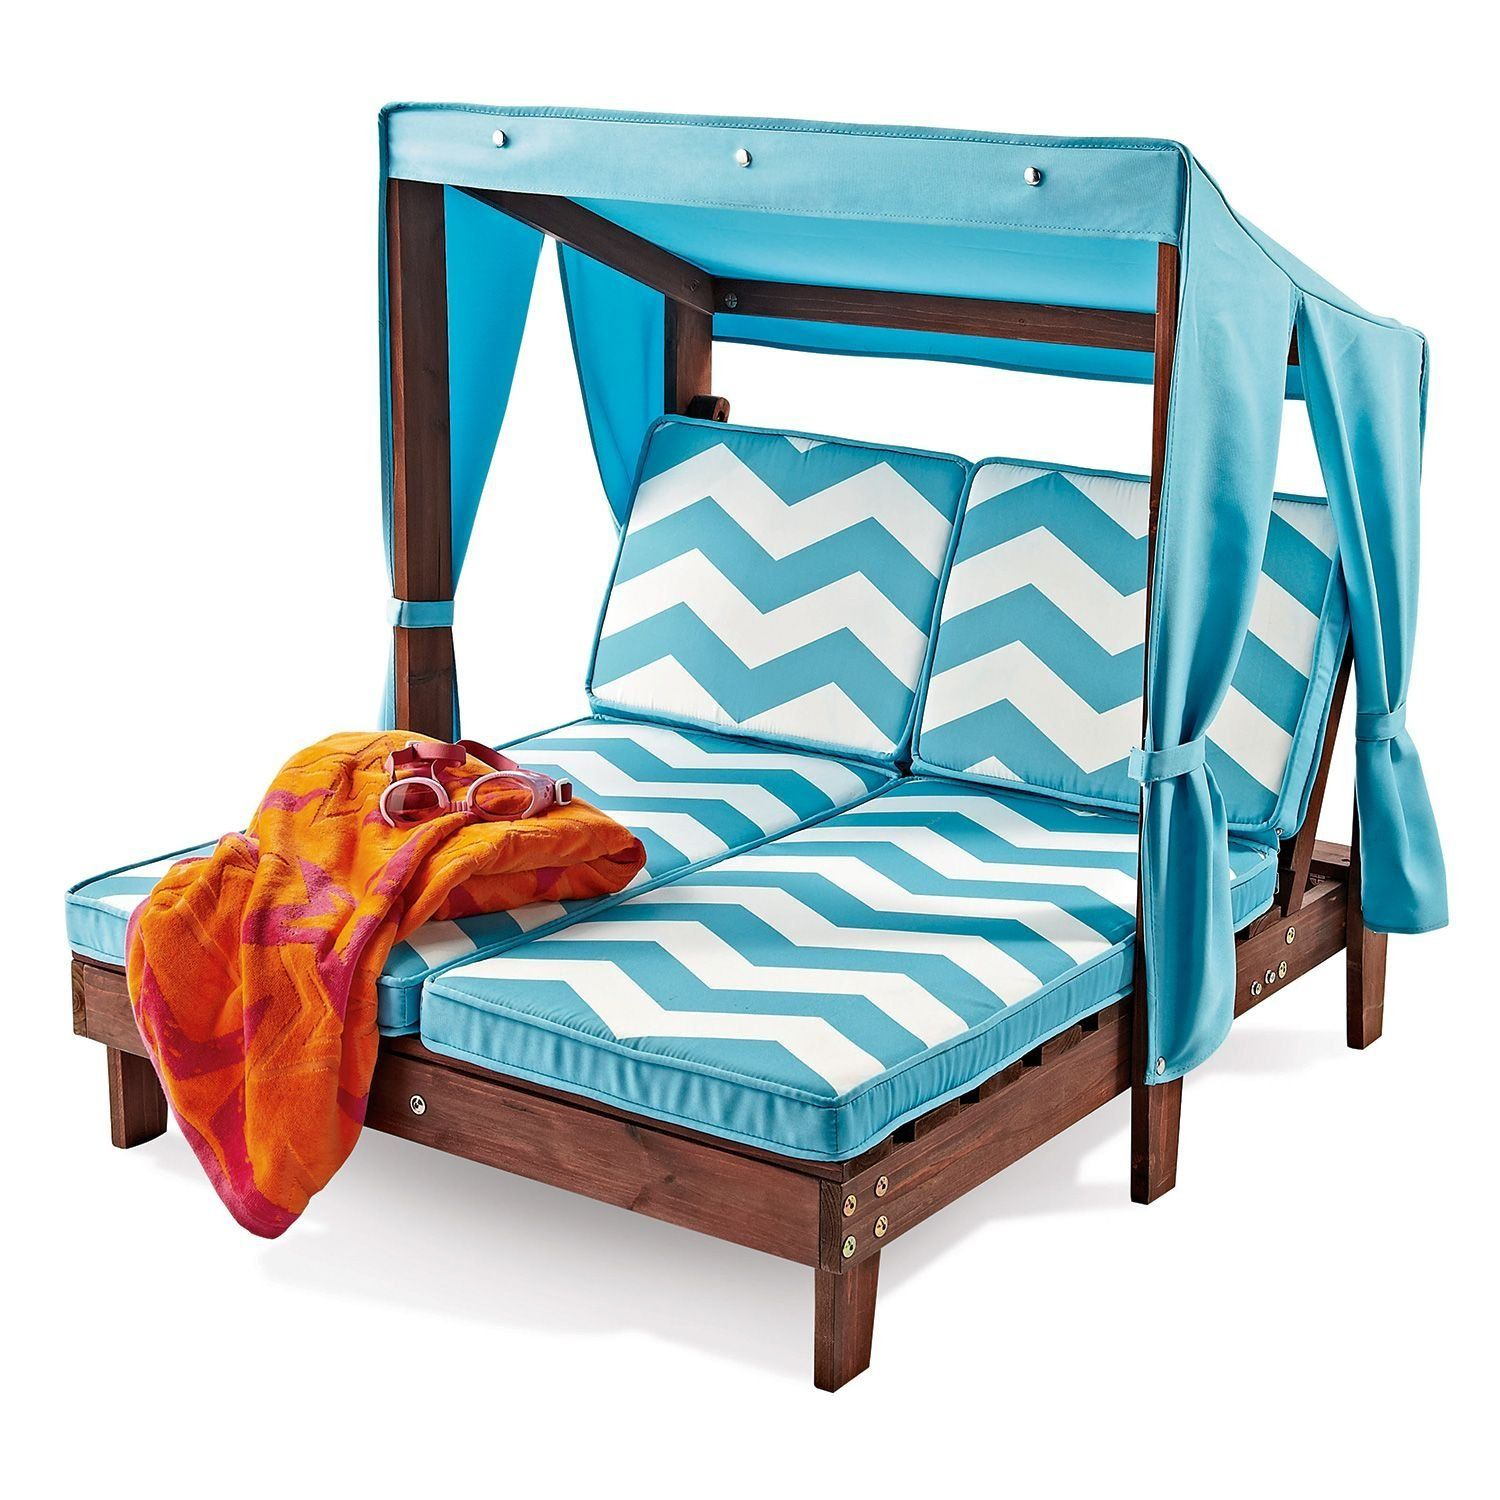 Lounge Chair With Canopy Zero Gravity Chairs Reviews Sunday Swoon Kids Backyard Complicated